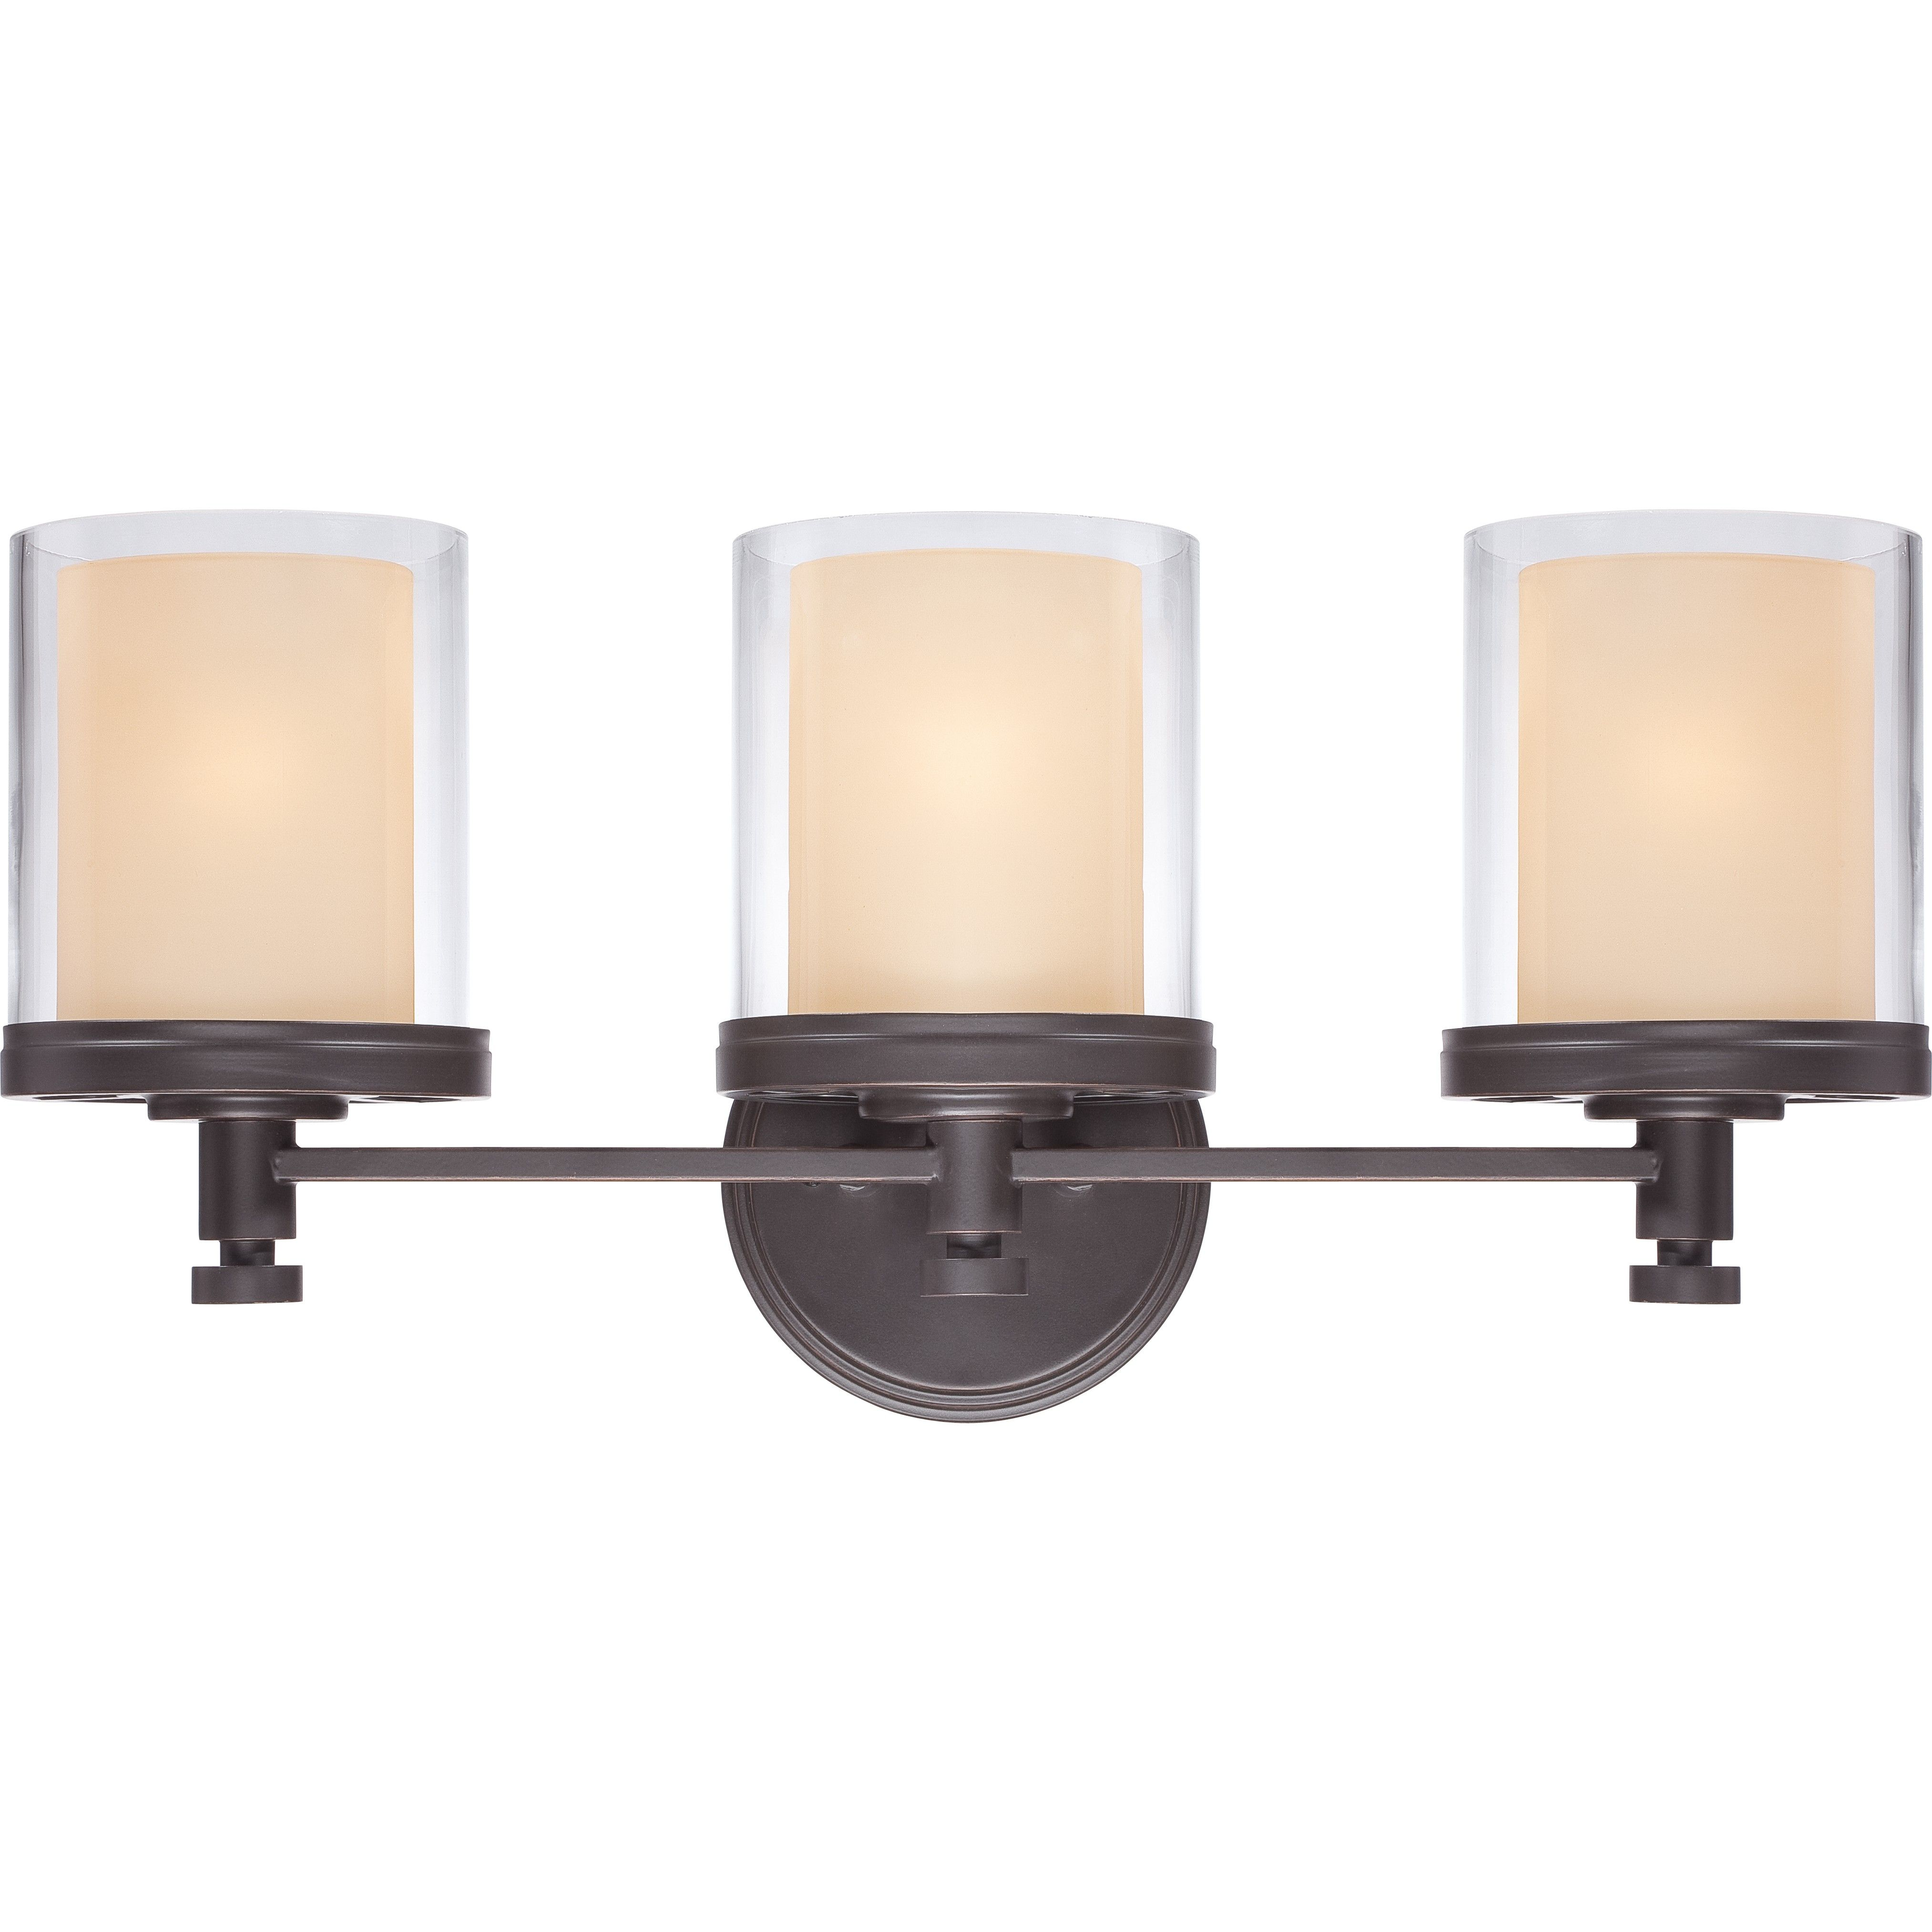 Nuvo 60 4543 3 Light Vanity Fixture Decker Collection